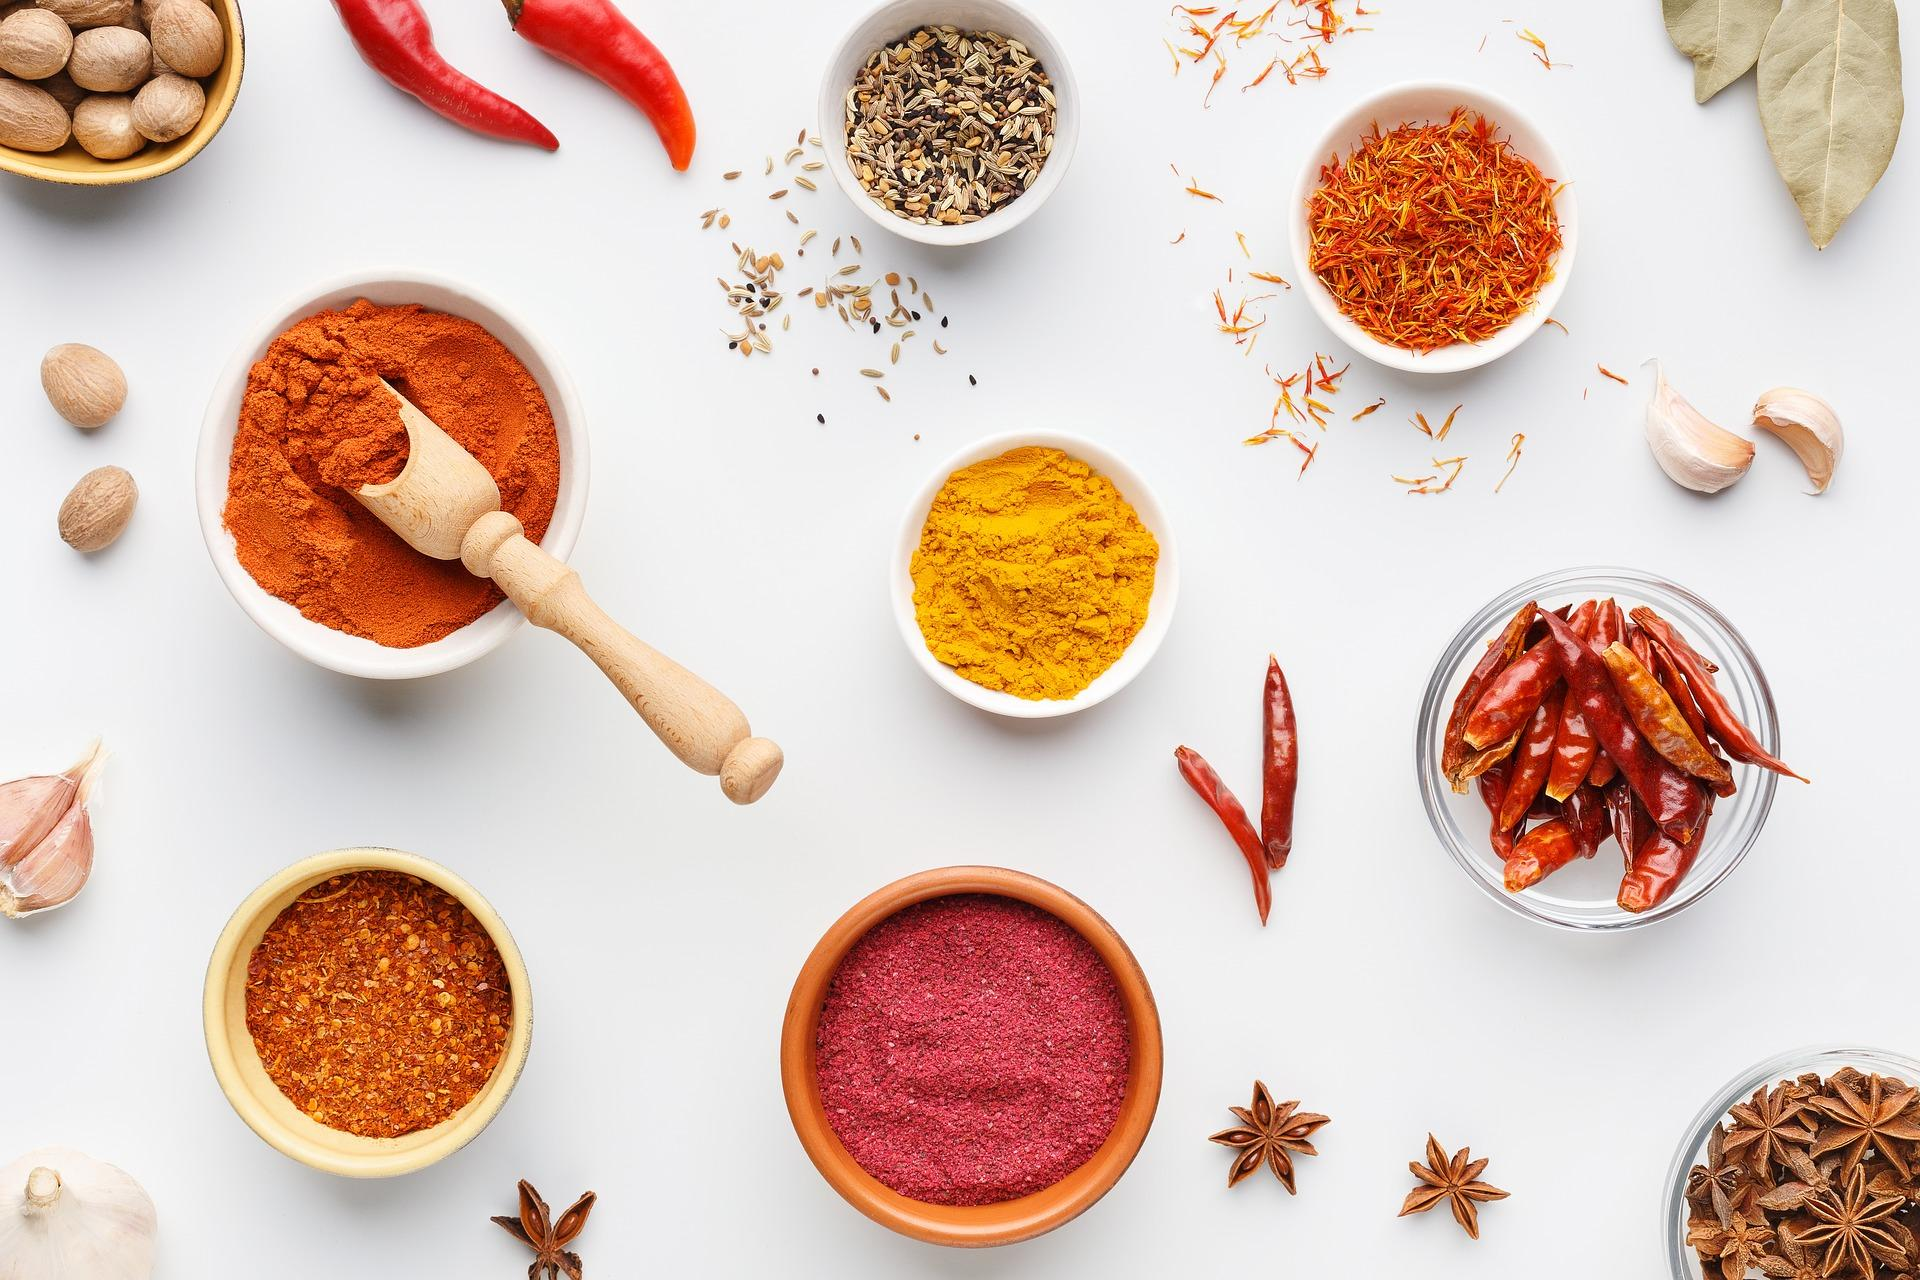 Spices that help reduce inflammation